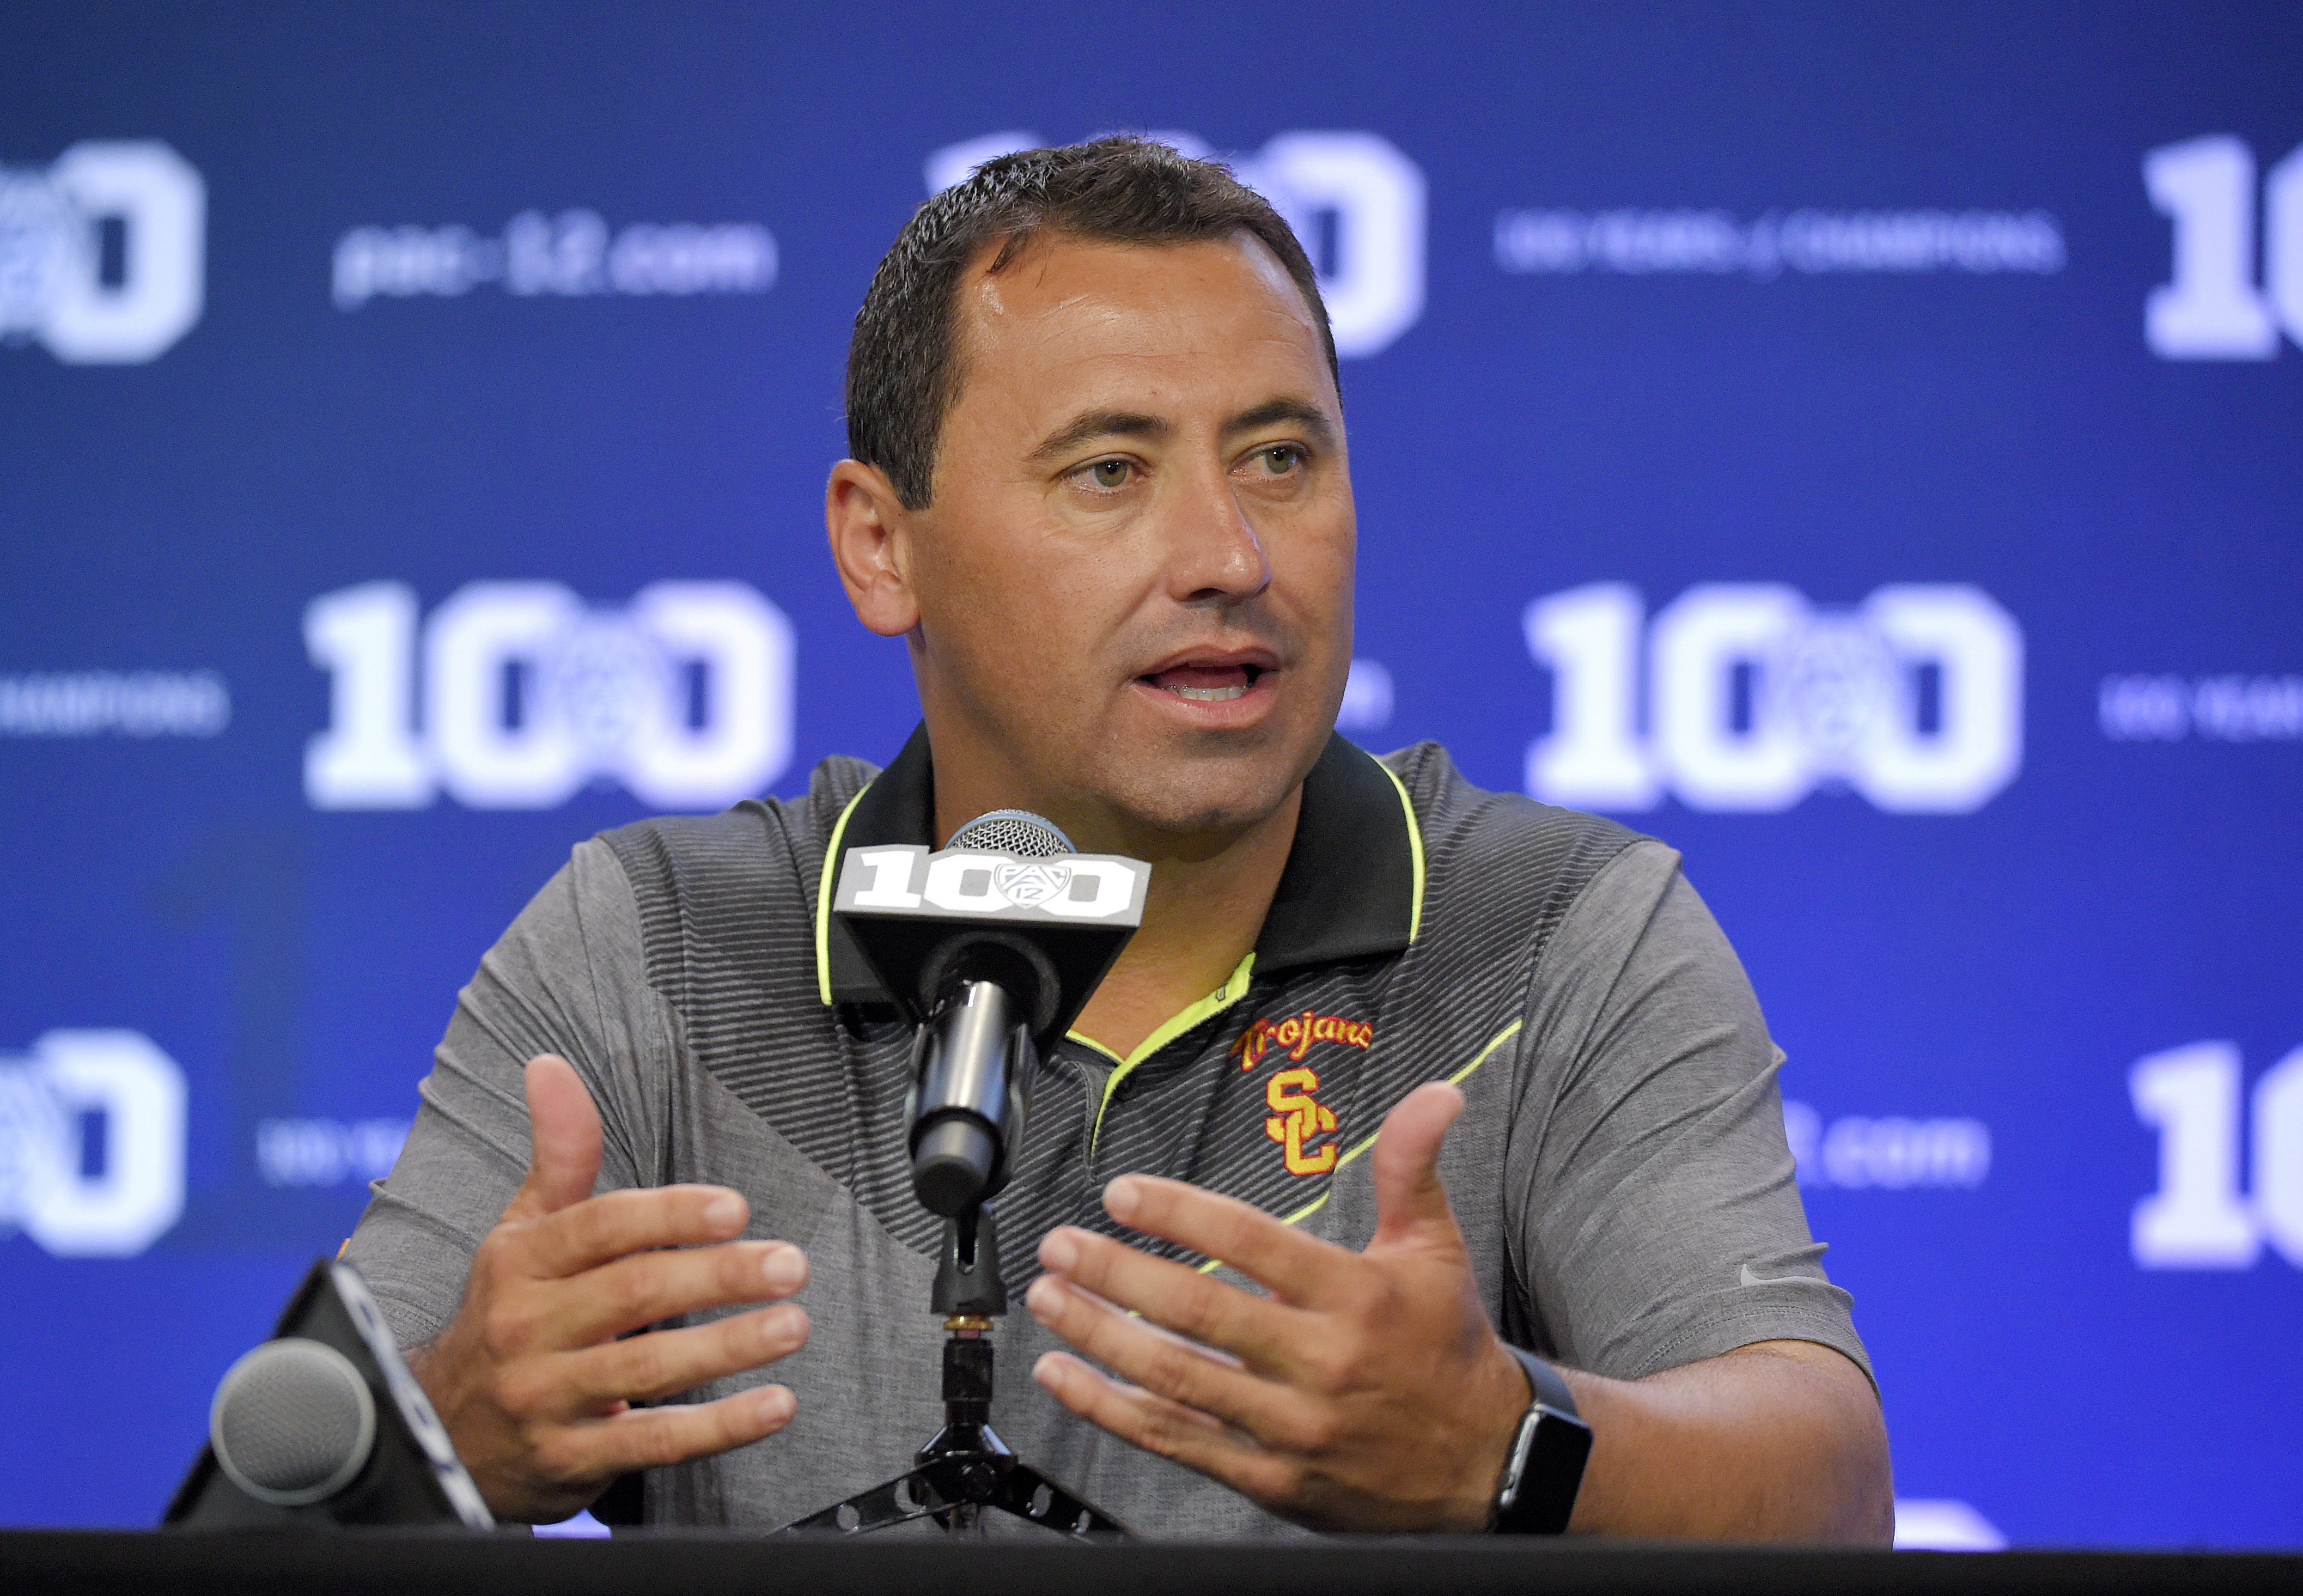 Southern California head coach Steve Sarkisian speaks to reporters during NCAA college Pac-12 Football Media Days, Friday, July 31, 2015, in Burbank, Calif. (AP Photo/Mark J. Terrill)